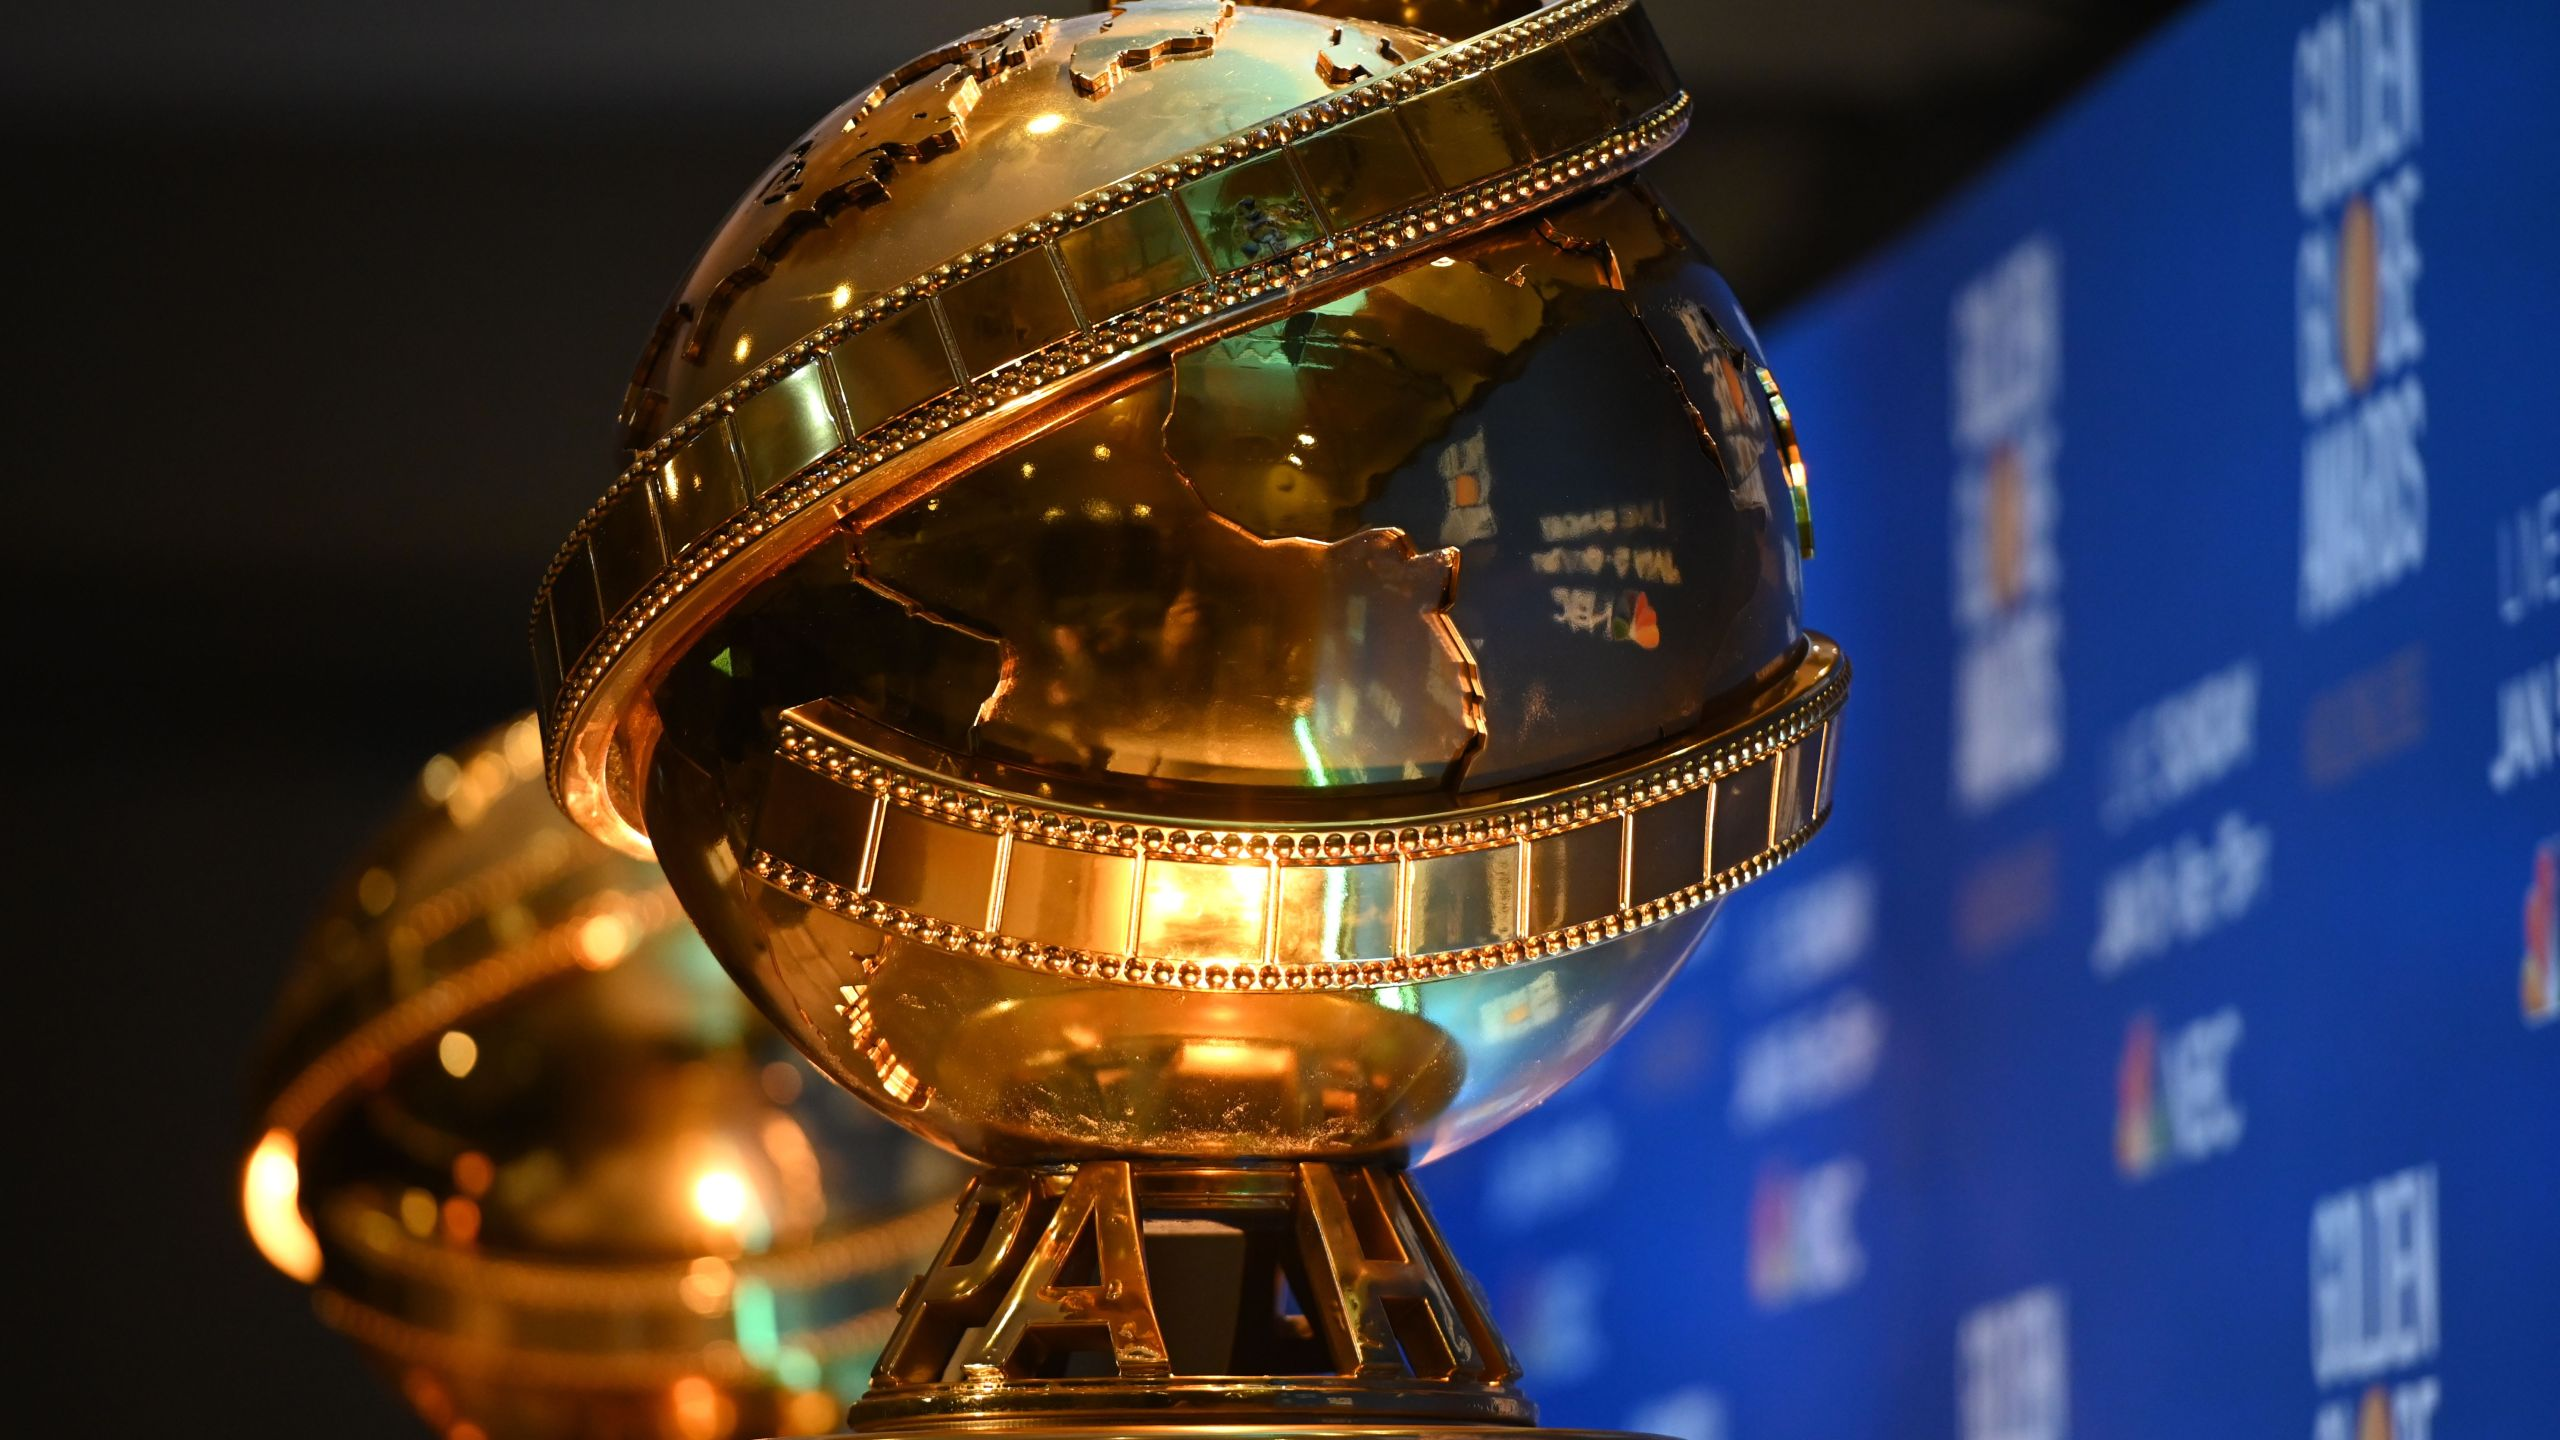 Golden Globe trophies are set by the stage ahead of the 77th Annual Golden Globe Awards nominations announcement at the Beverly Hilton hotel in Beverly Hills on Dec. 9, 2019. (Credit: ROBYN BECK/AFP via Getty Images)